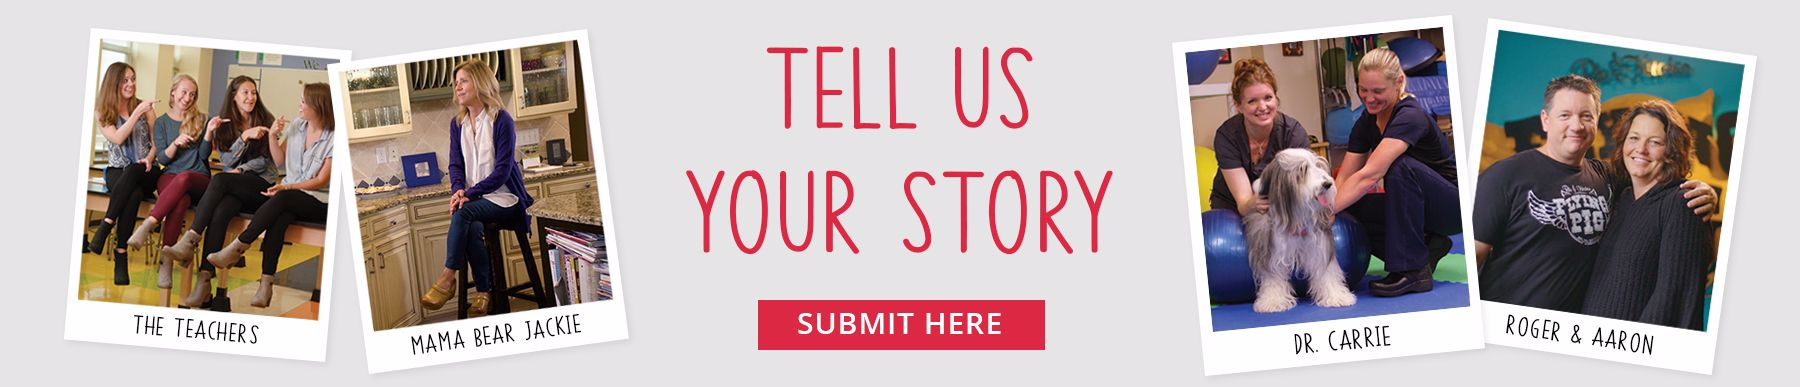 Dansko Embrace Your Journey - Share Your Story